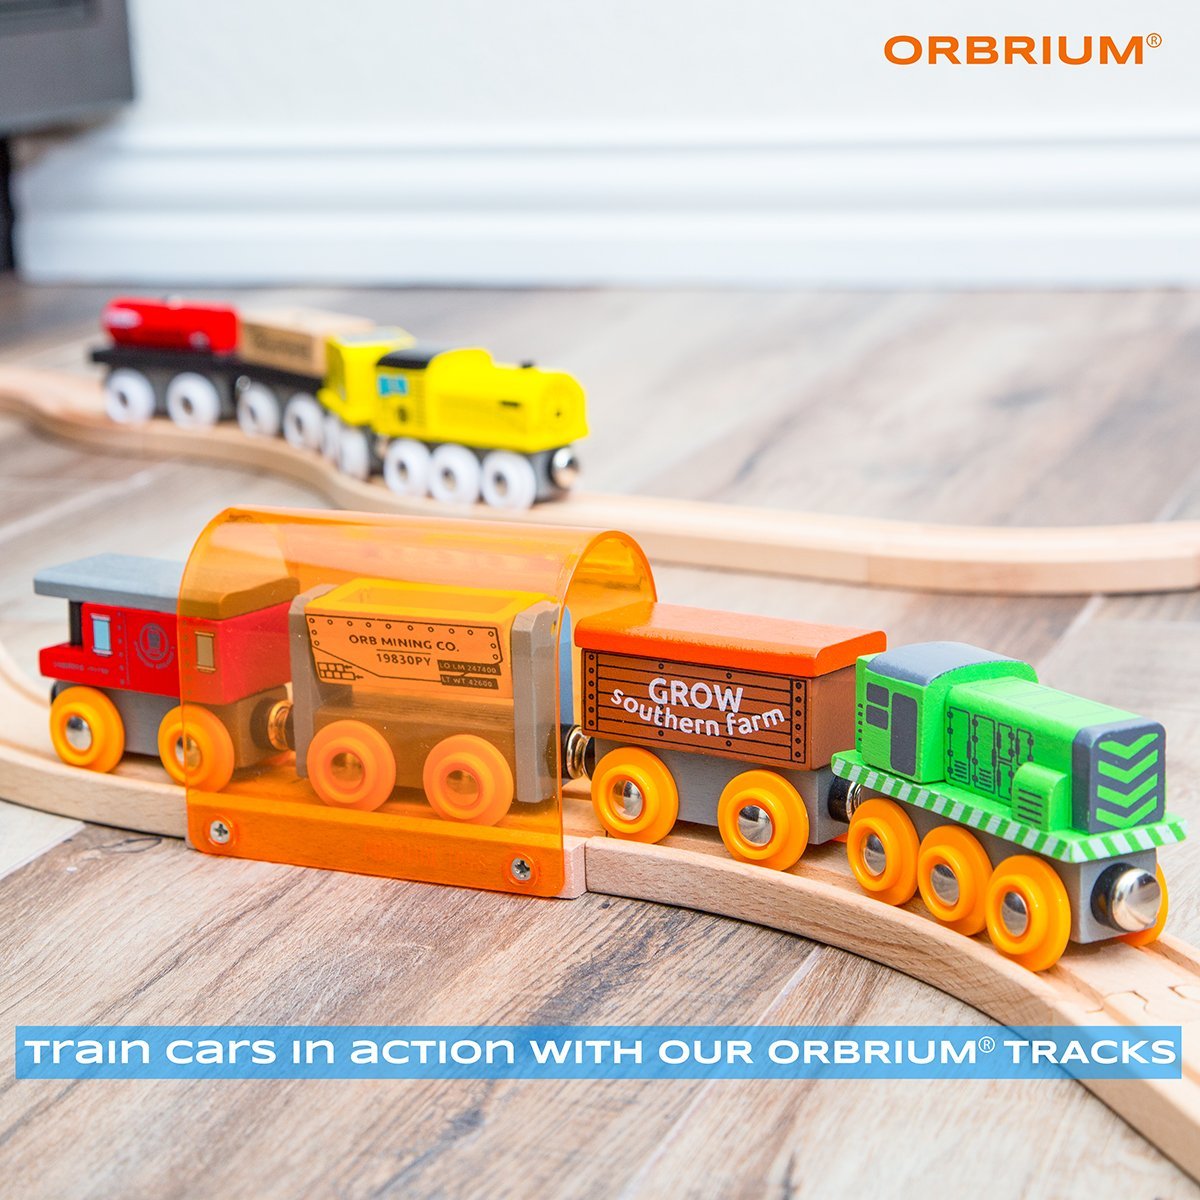 Orbrium Toys 12 Pcs Wooden Engines & Train Cars Collection Compatible with Thomas Wooden Railway, Brio, Chuggington by Orbrium Toys (Image #3)